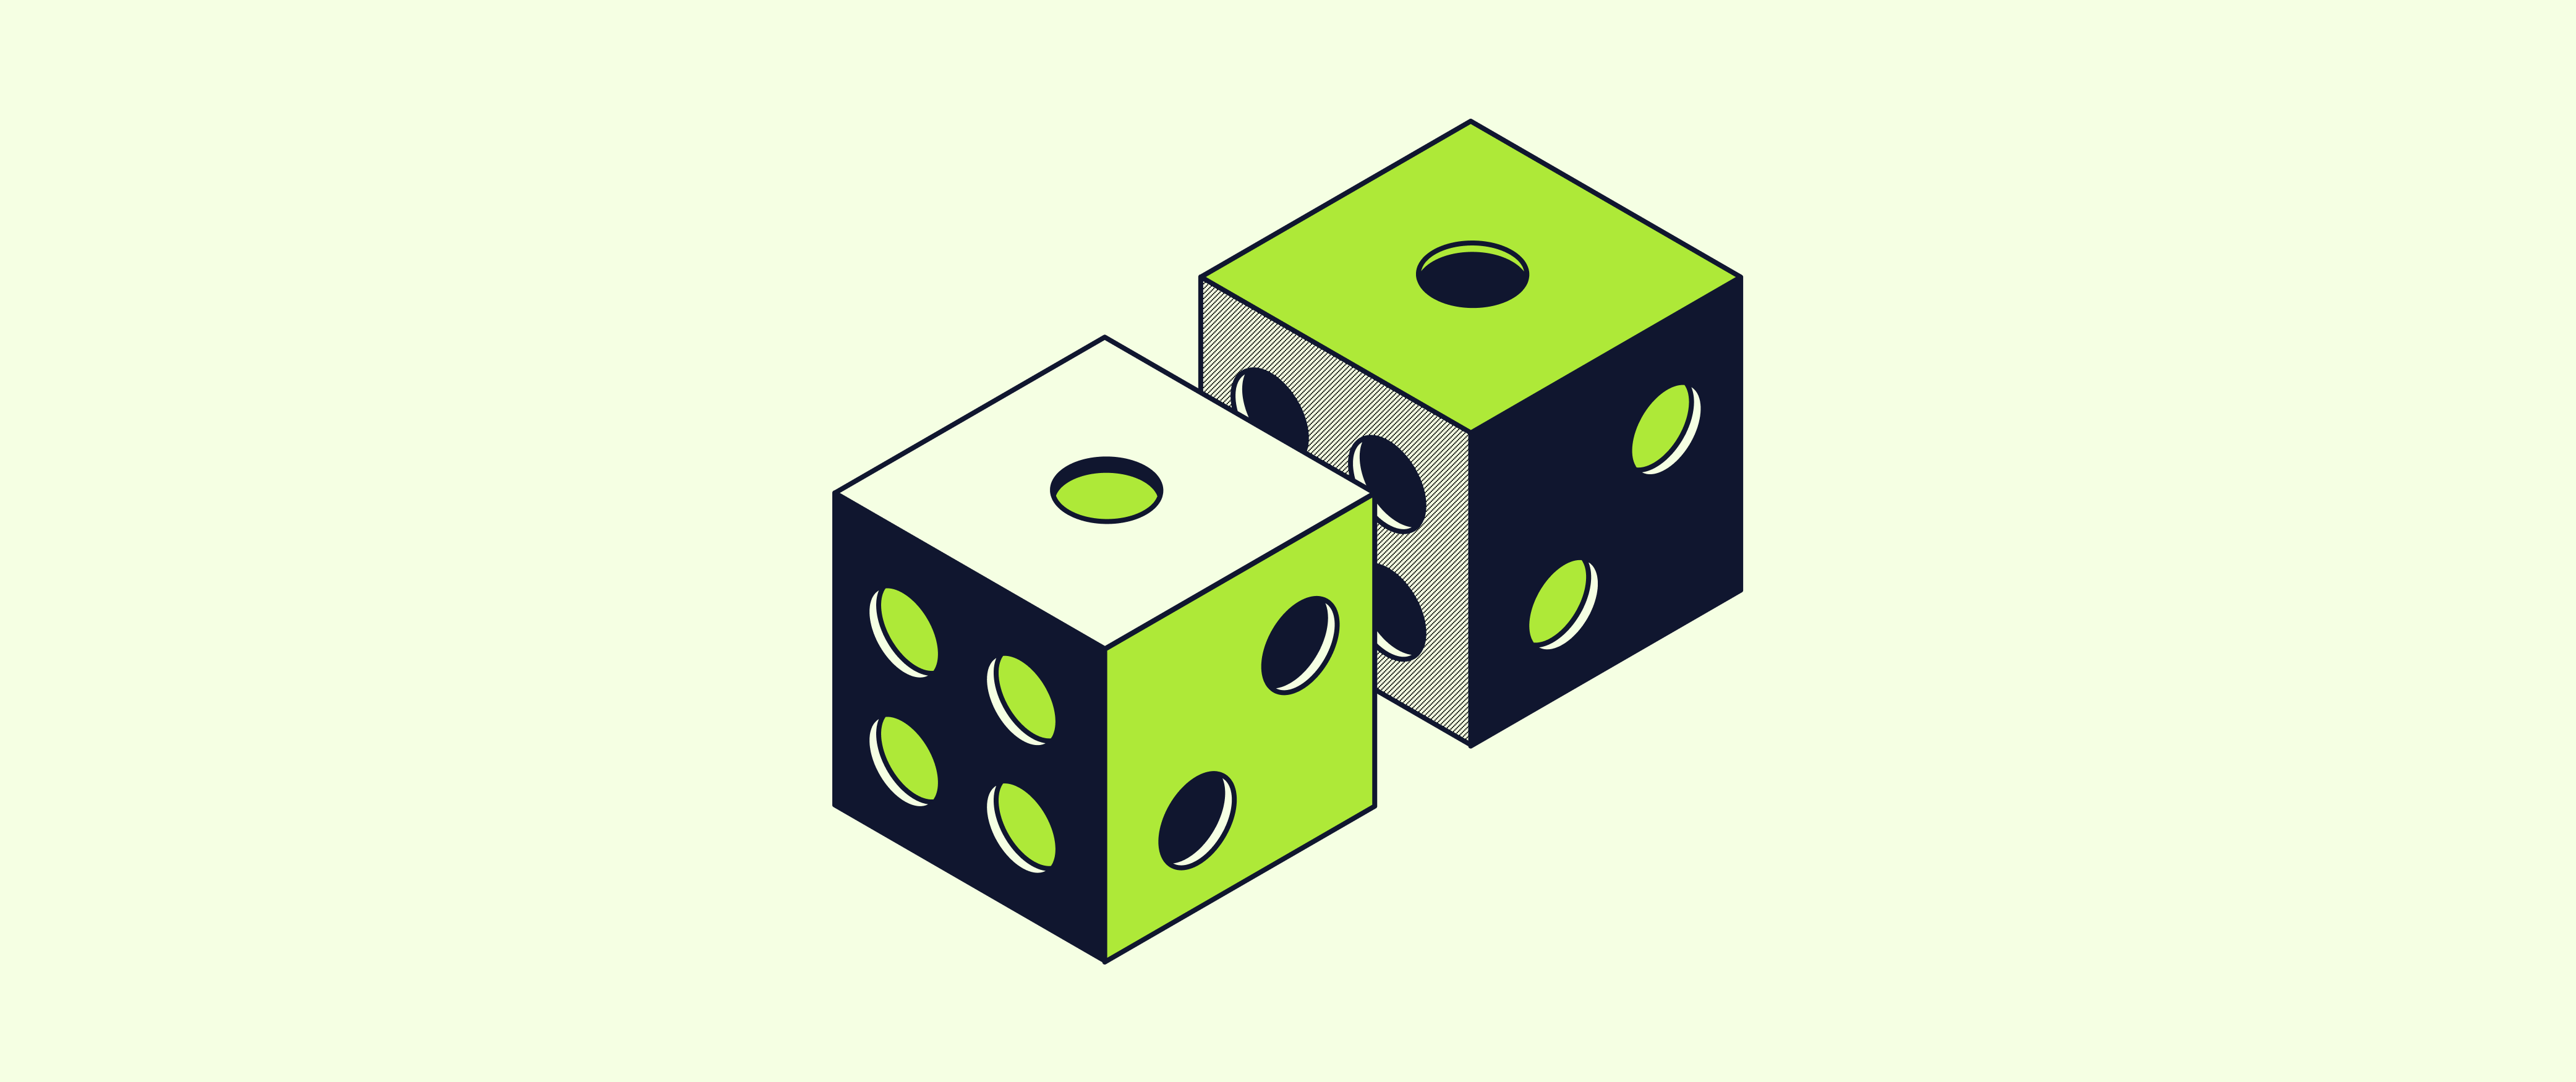 Image of a pair of dice